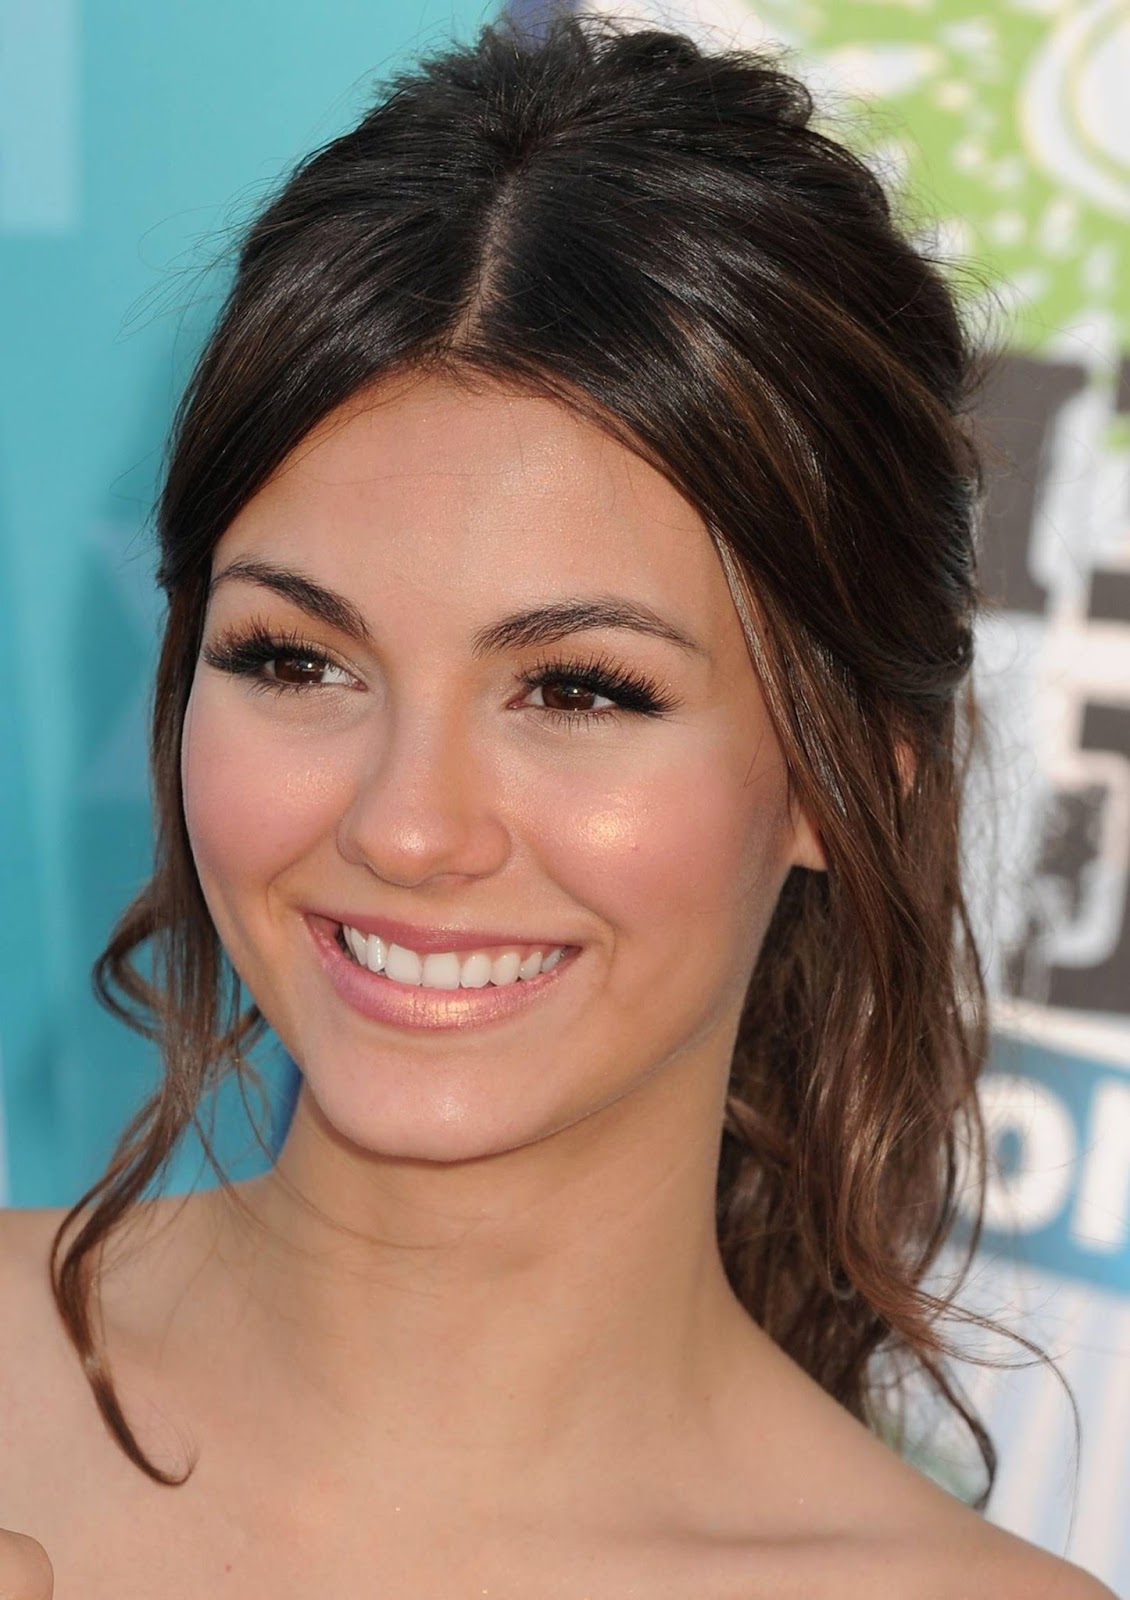 Homecoming Hairstyles - Top Haircut Styles 2017